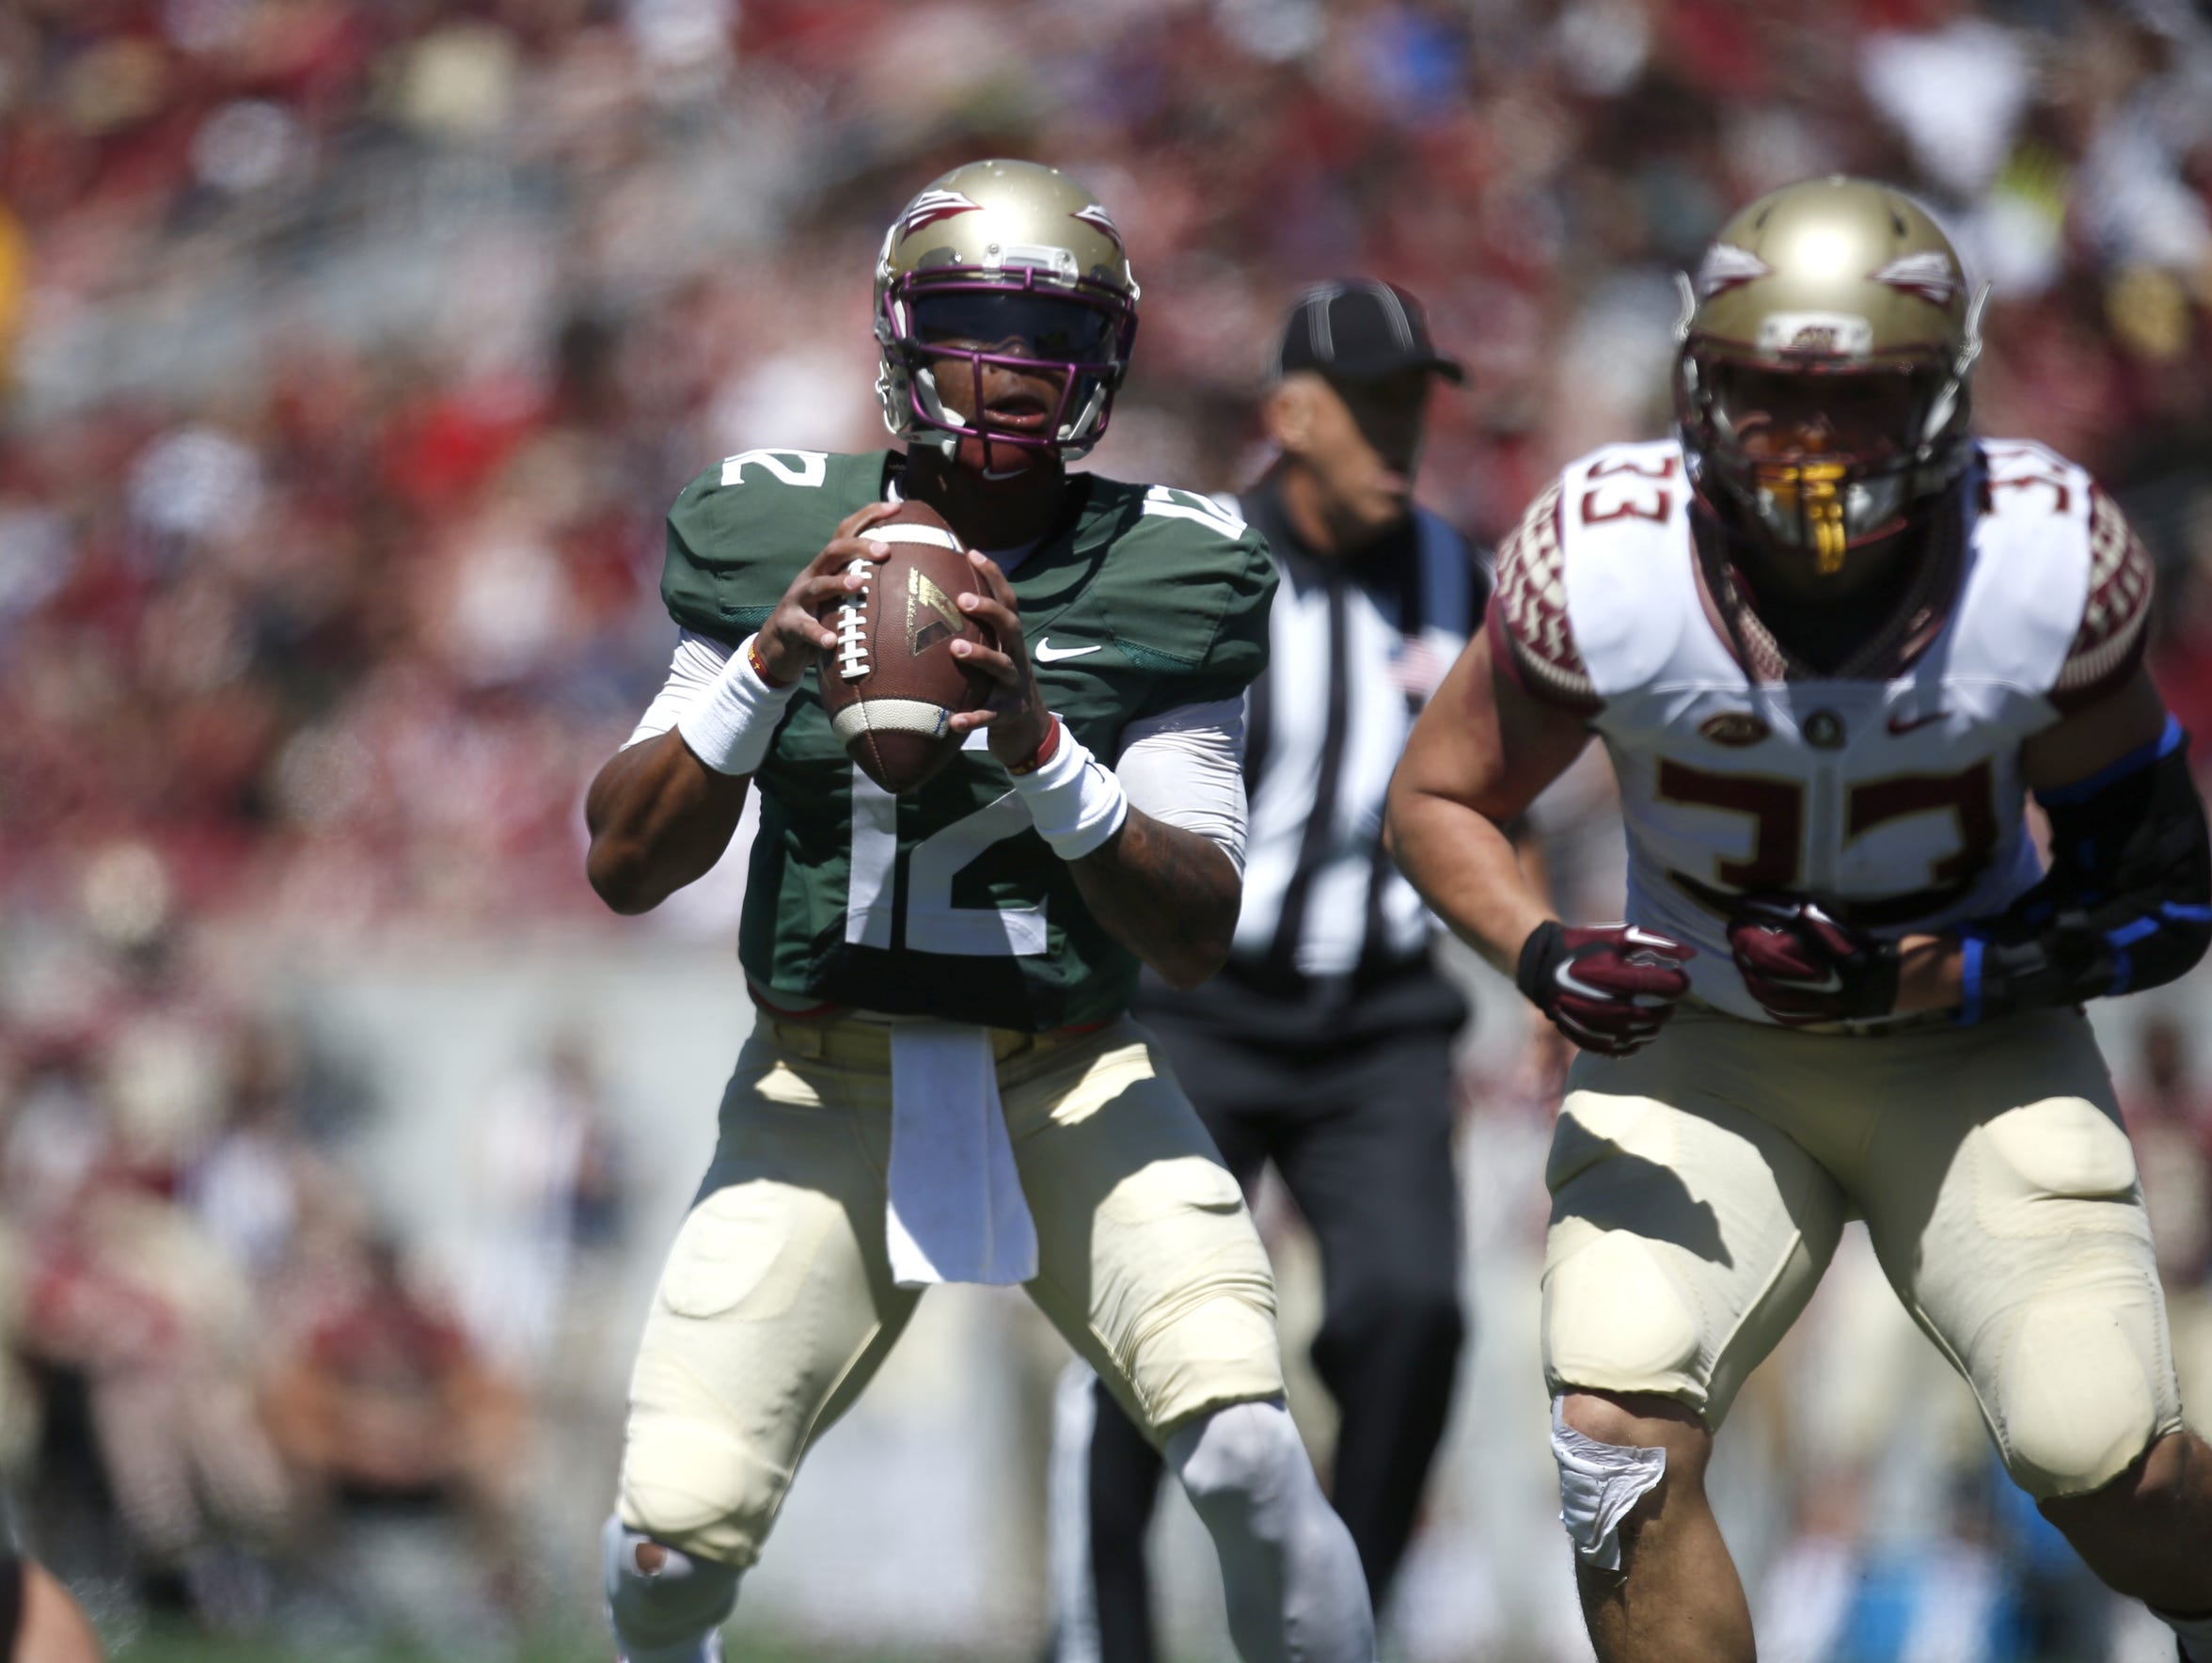 Deondre Francois tossed for 246 yards and two touchdowns